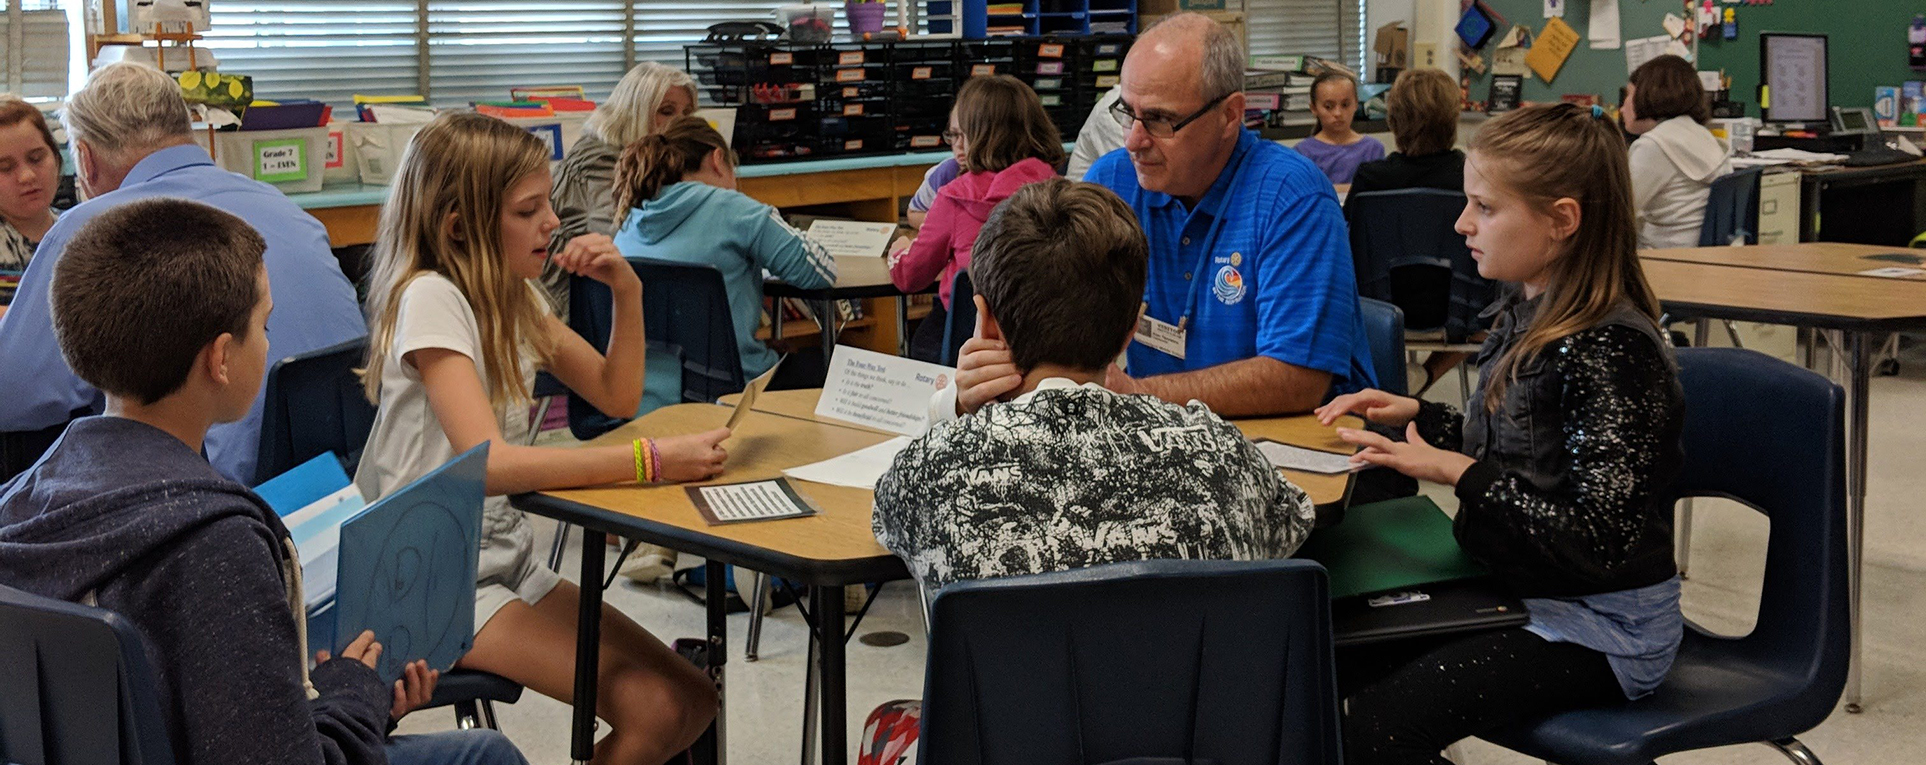 Students talk to adult about Rotary